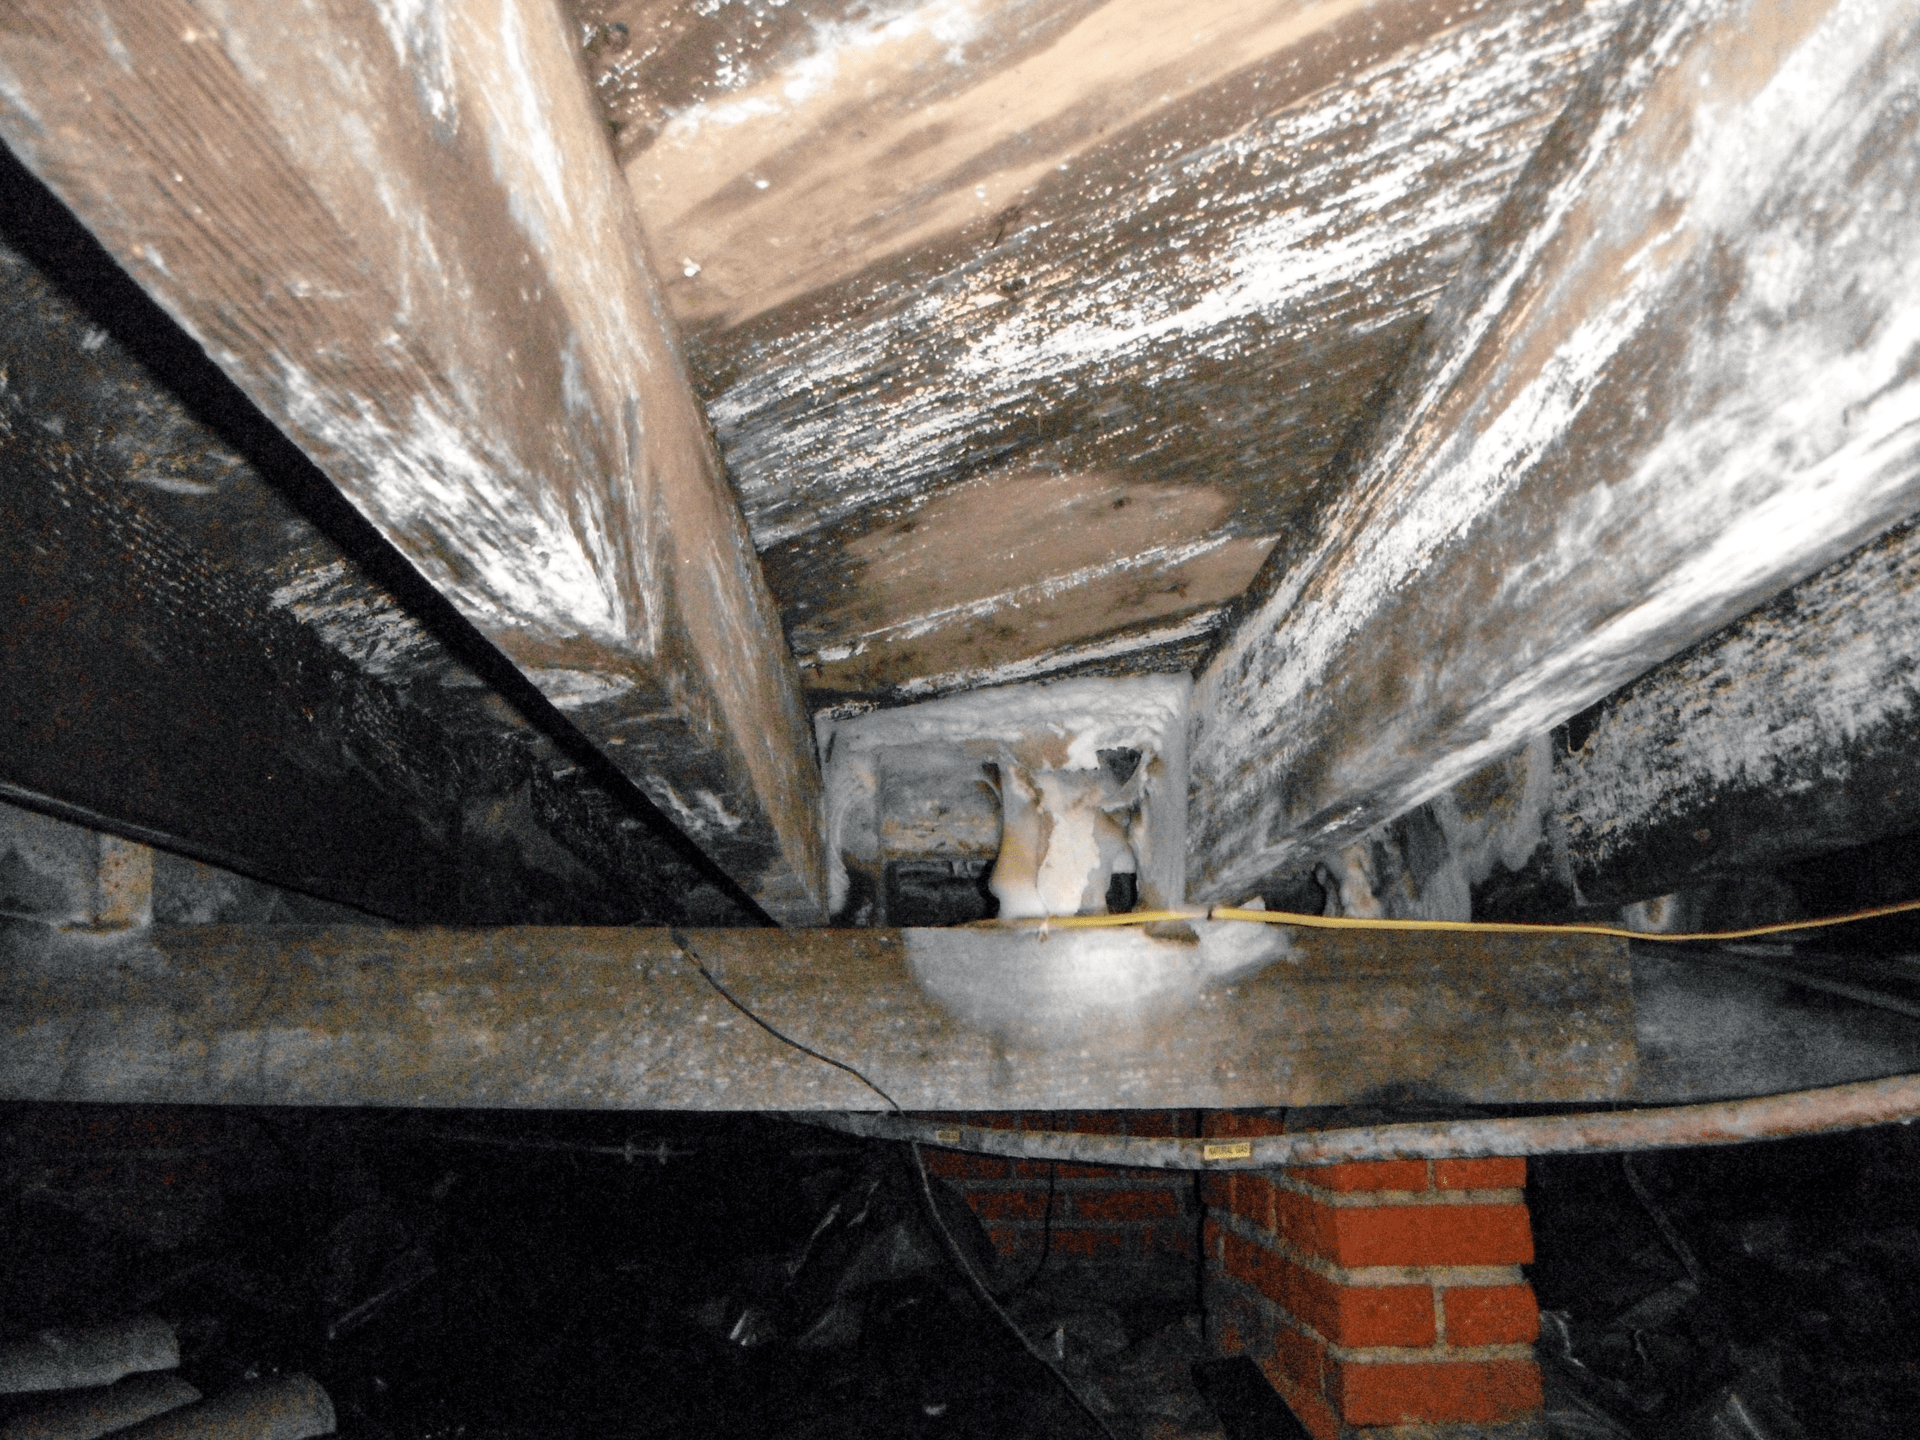 wood fungus on crawl space with mold and moisture